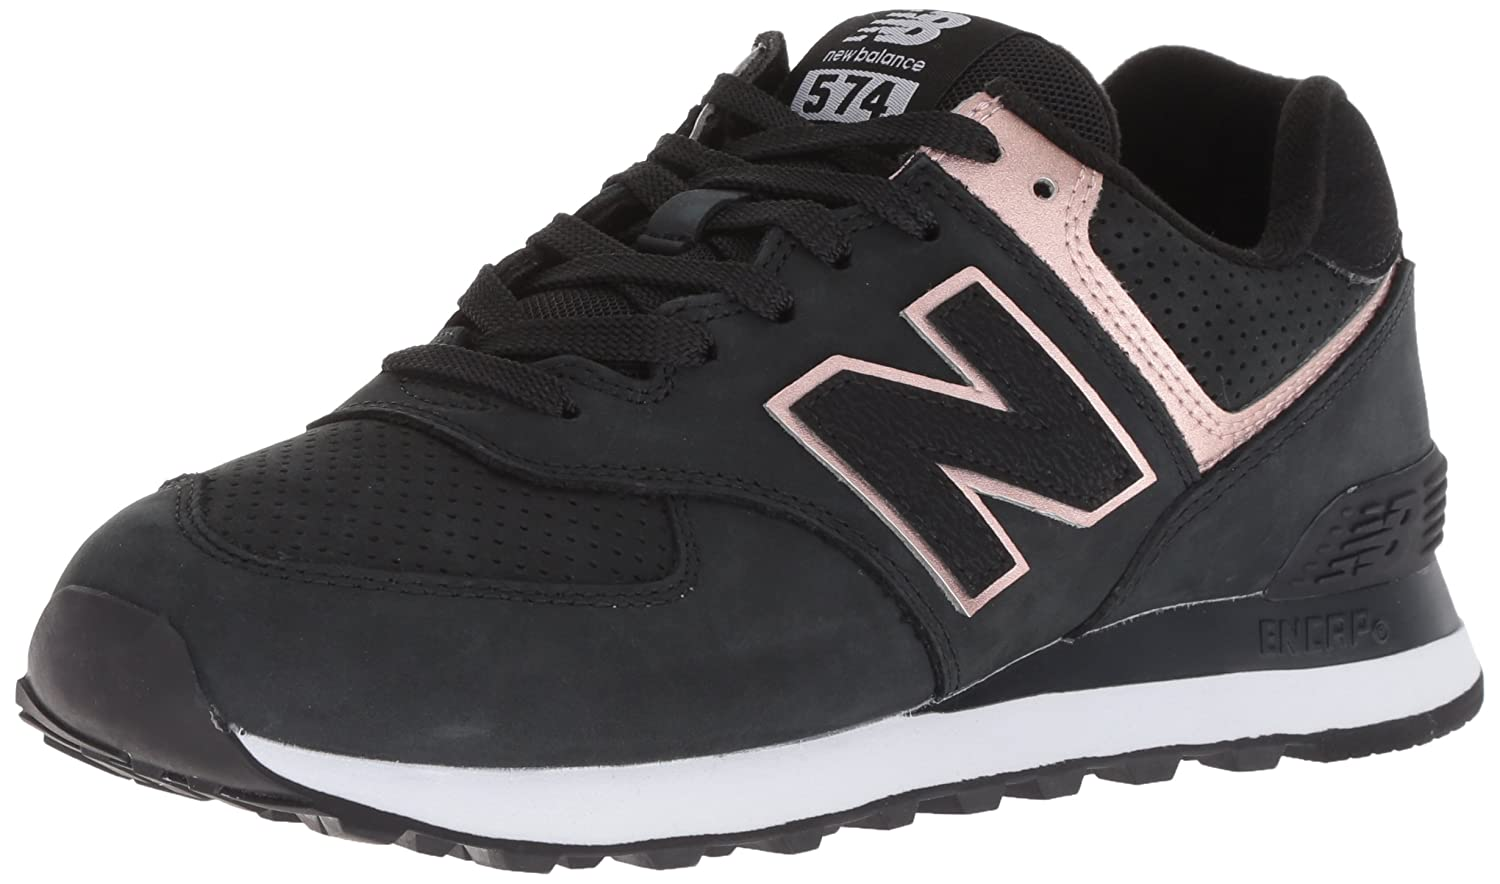 New Balance Women's Wl574v2 B075R6VHJ9 9 M US|black